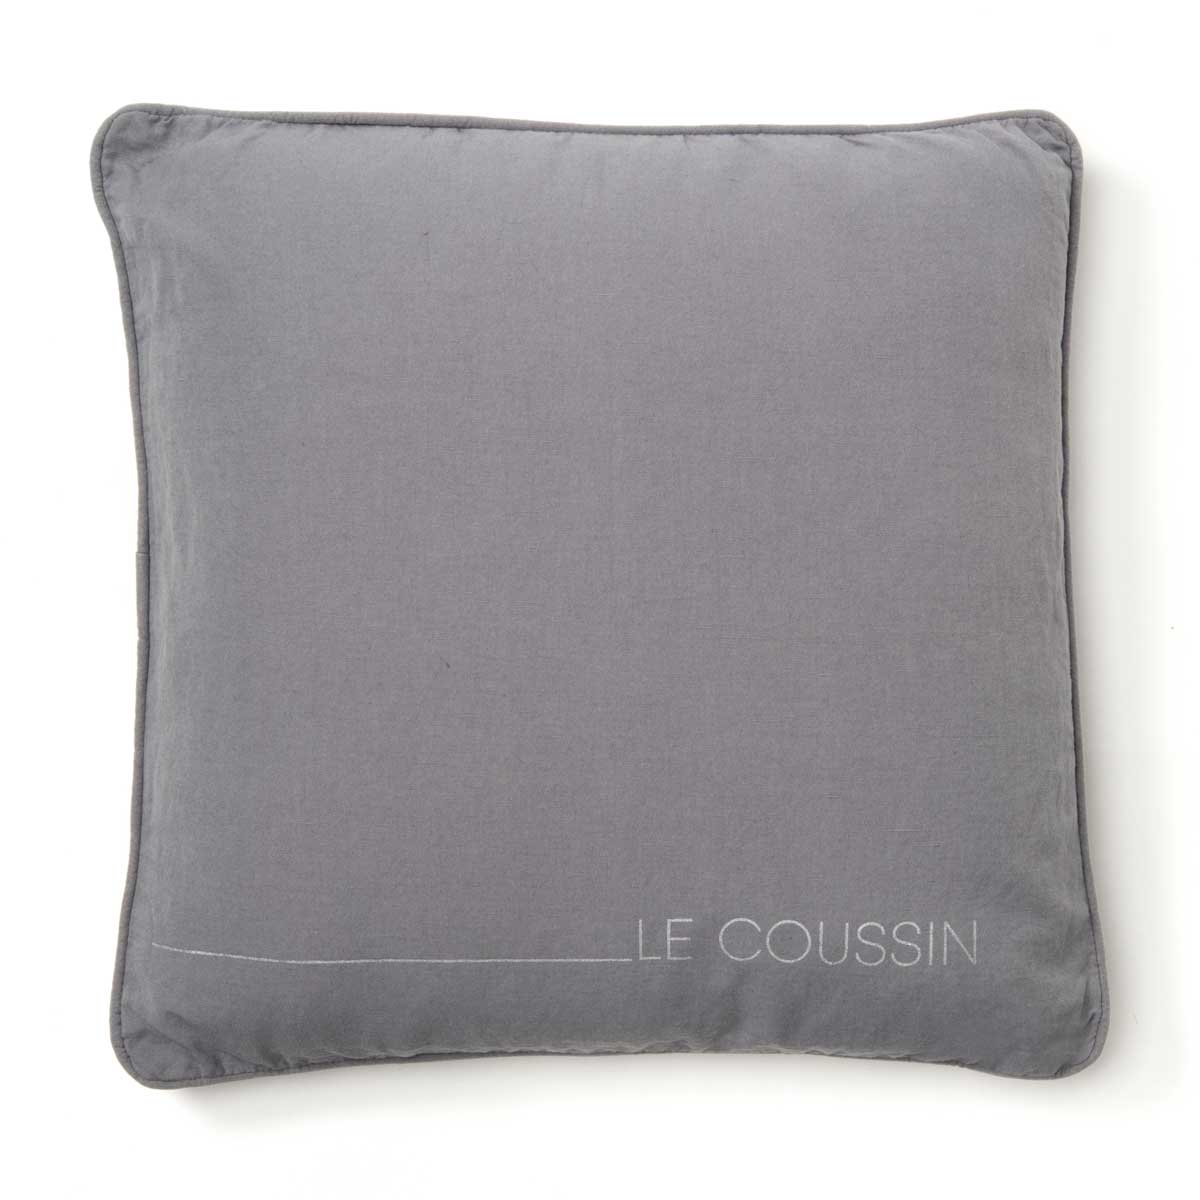 coussin le coussin anthracite gris clair. Black Bedroom Furniture Sets. Home Design Ideas